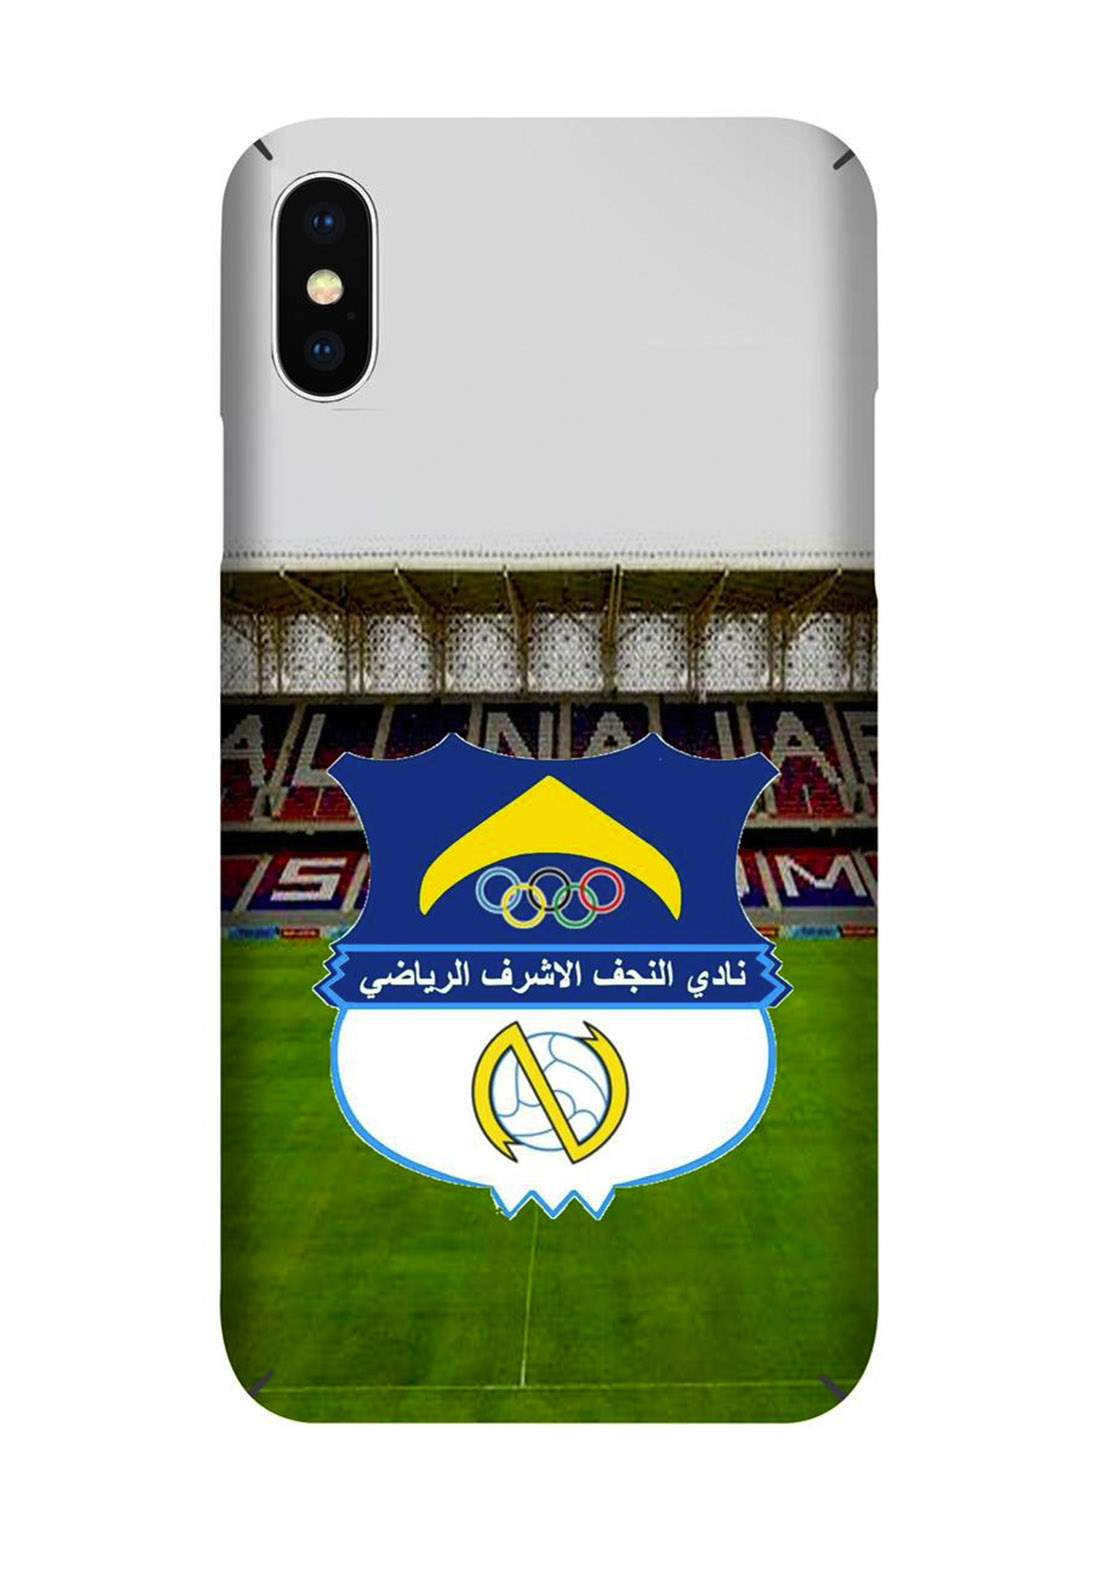 Protective Cover For iphone X حافظة موبايل